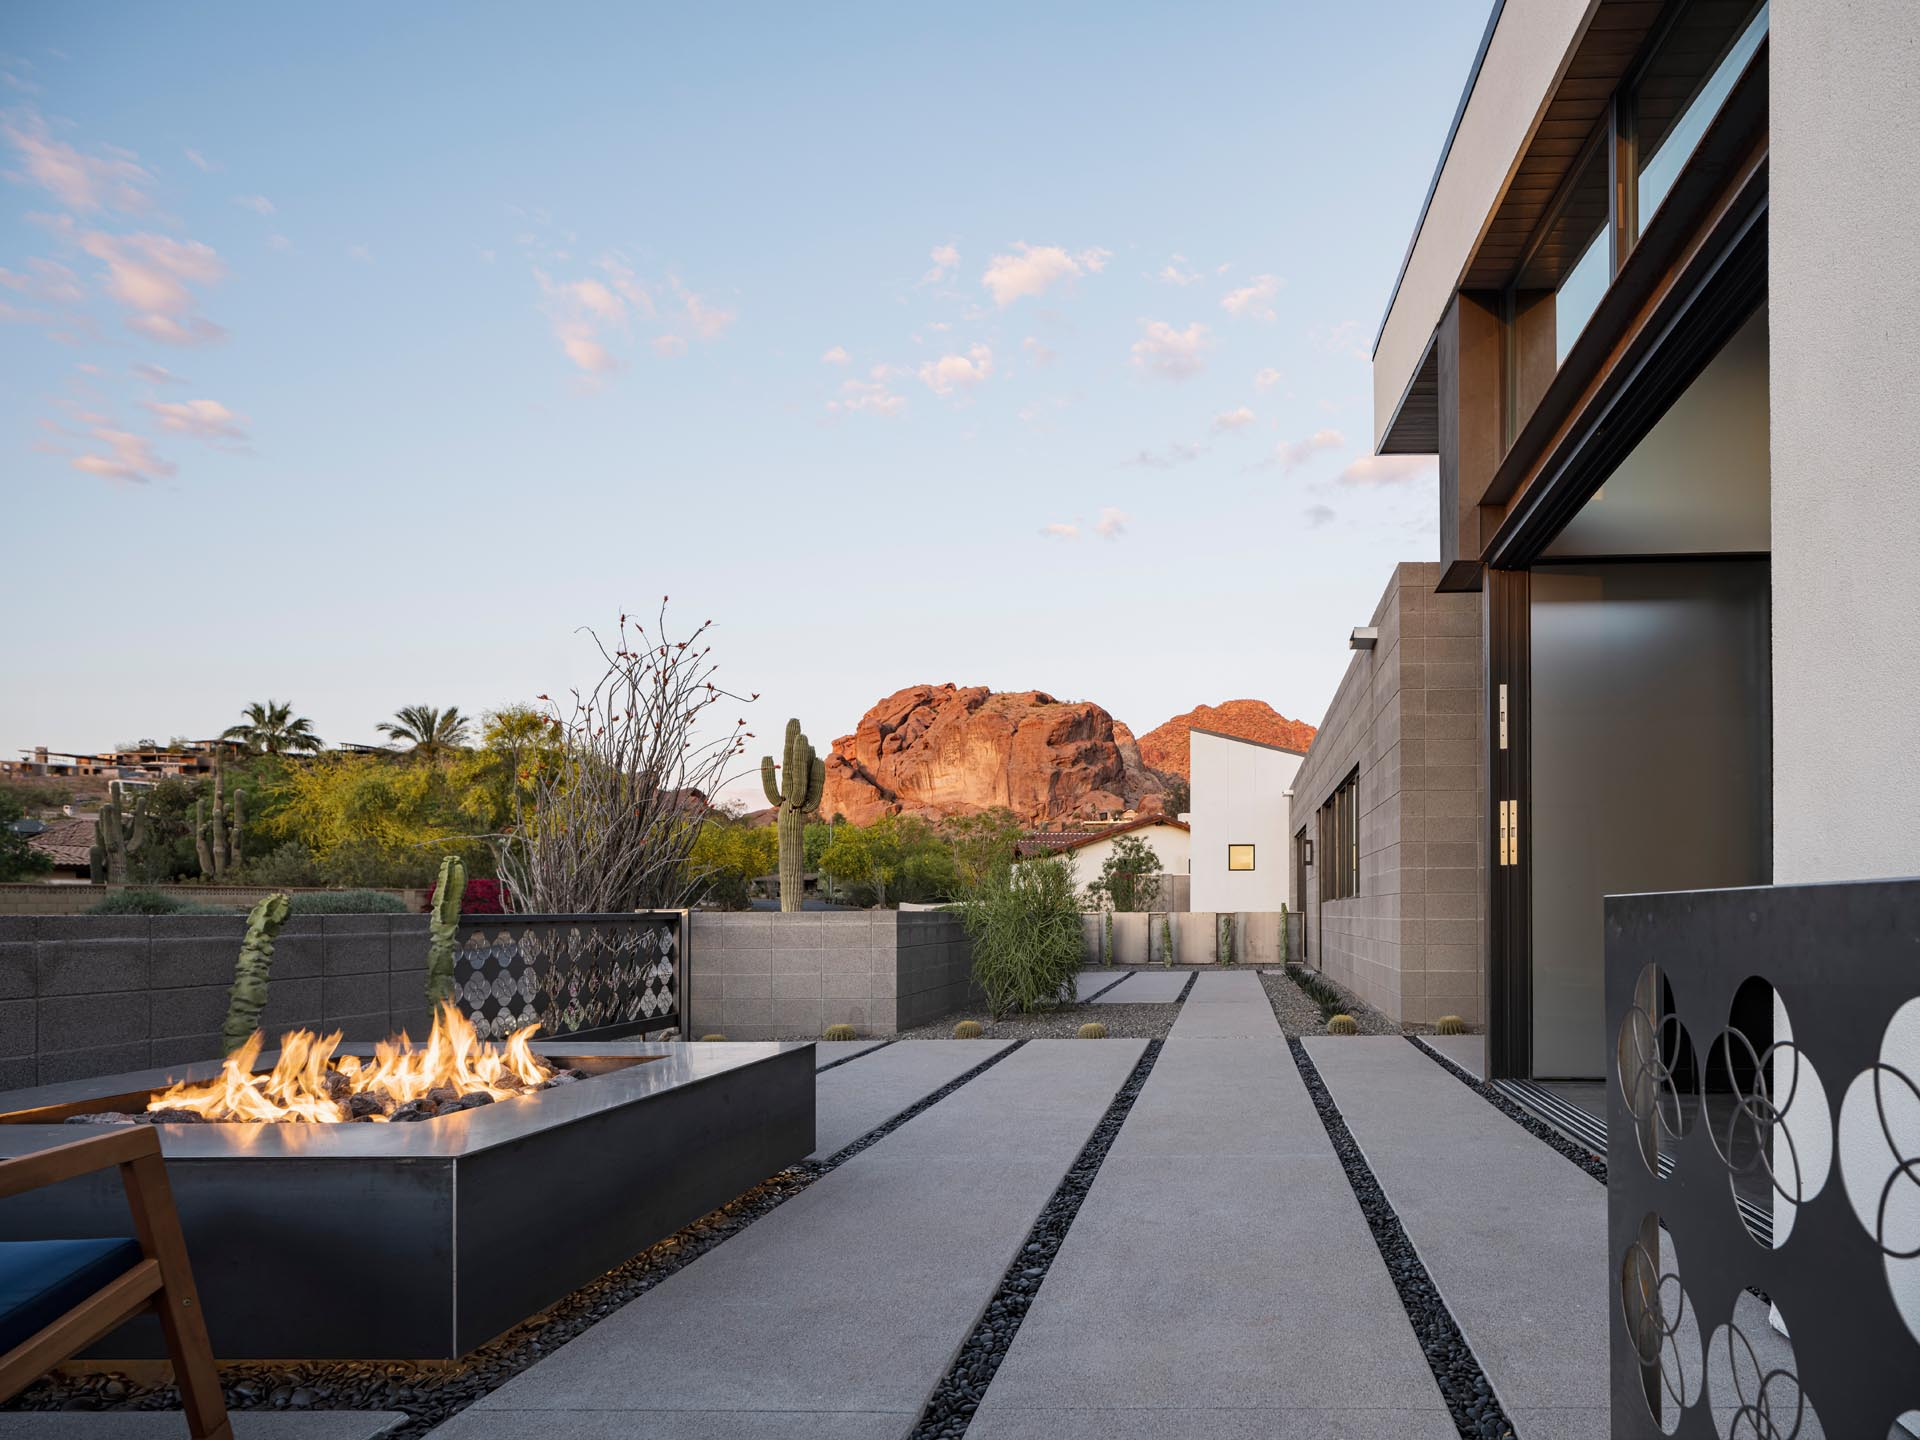 The semi-public front porch furnished with a fire pit and seating, projects out from the front of the house to take advantage of the mountain views.